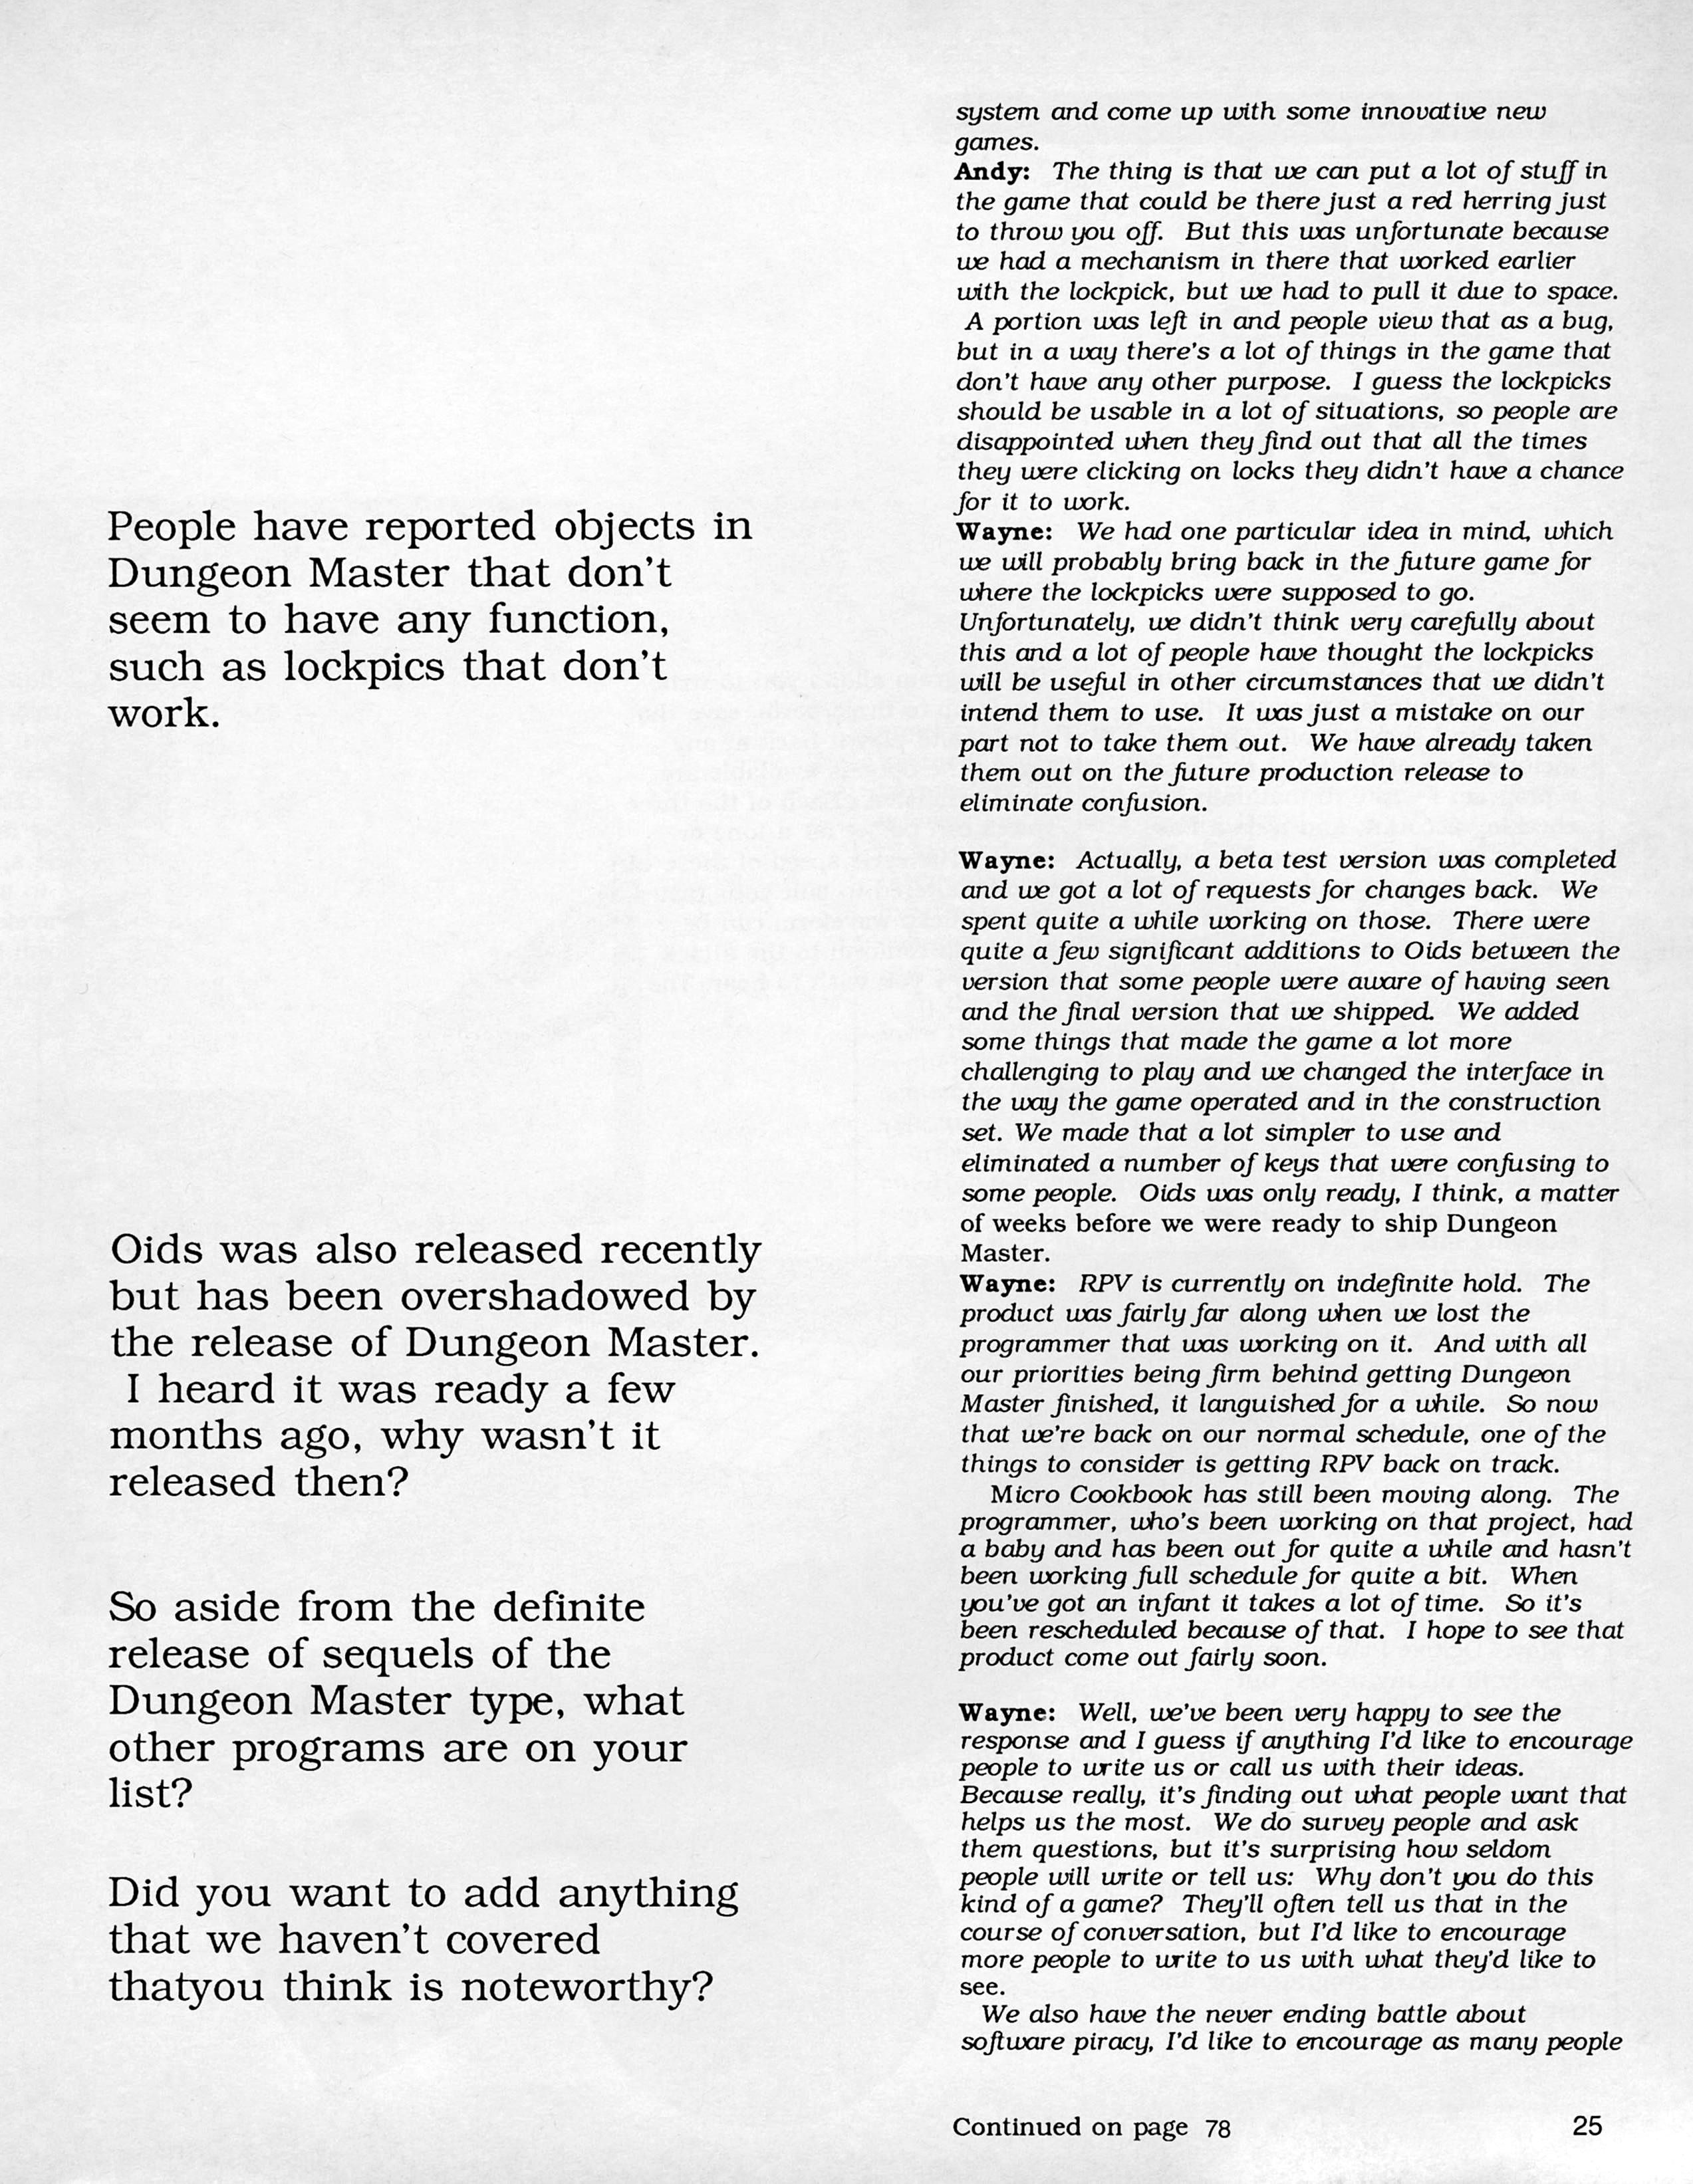 FTL Interview published in American magazine 'ST X-PRESS', Vol 2 No 2 March 1988, Page 25